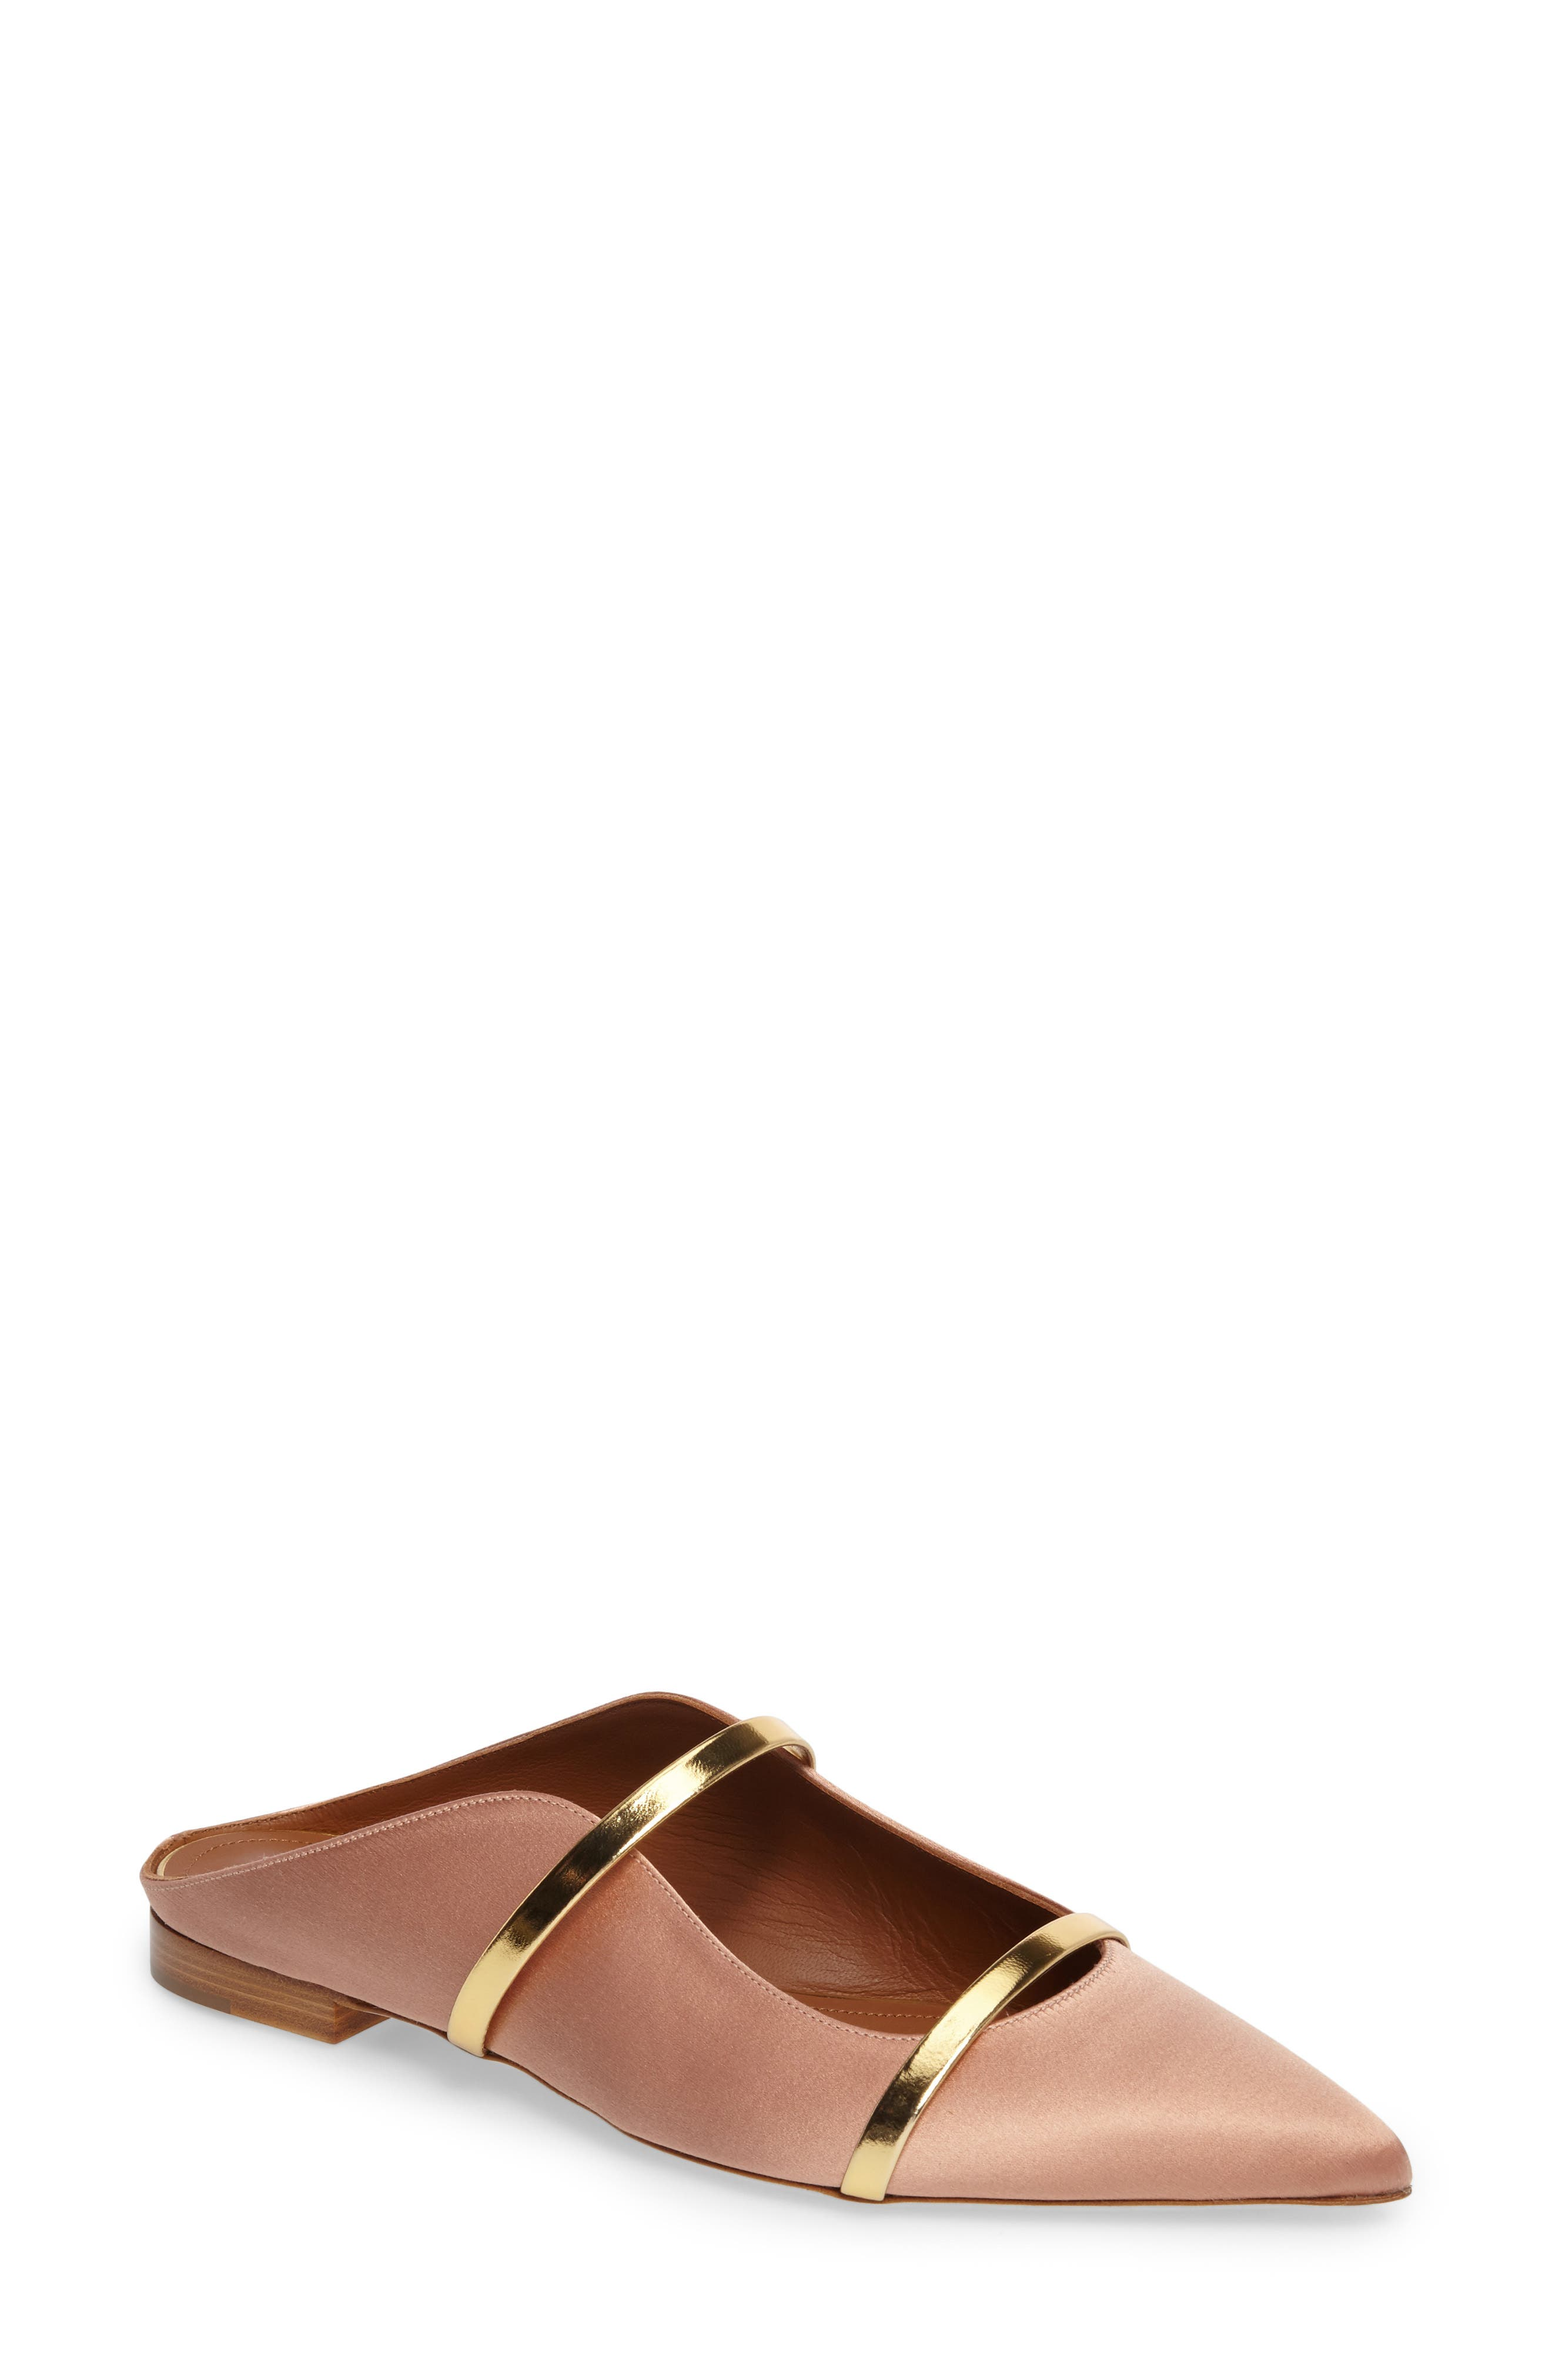 Alternate Image 1 Selected - Malone Souliers Maureen Double Band Mule (Women)